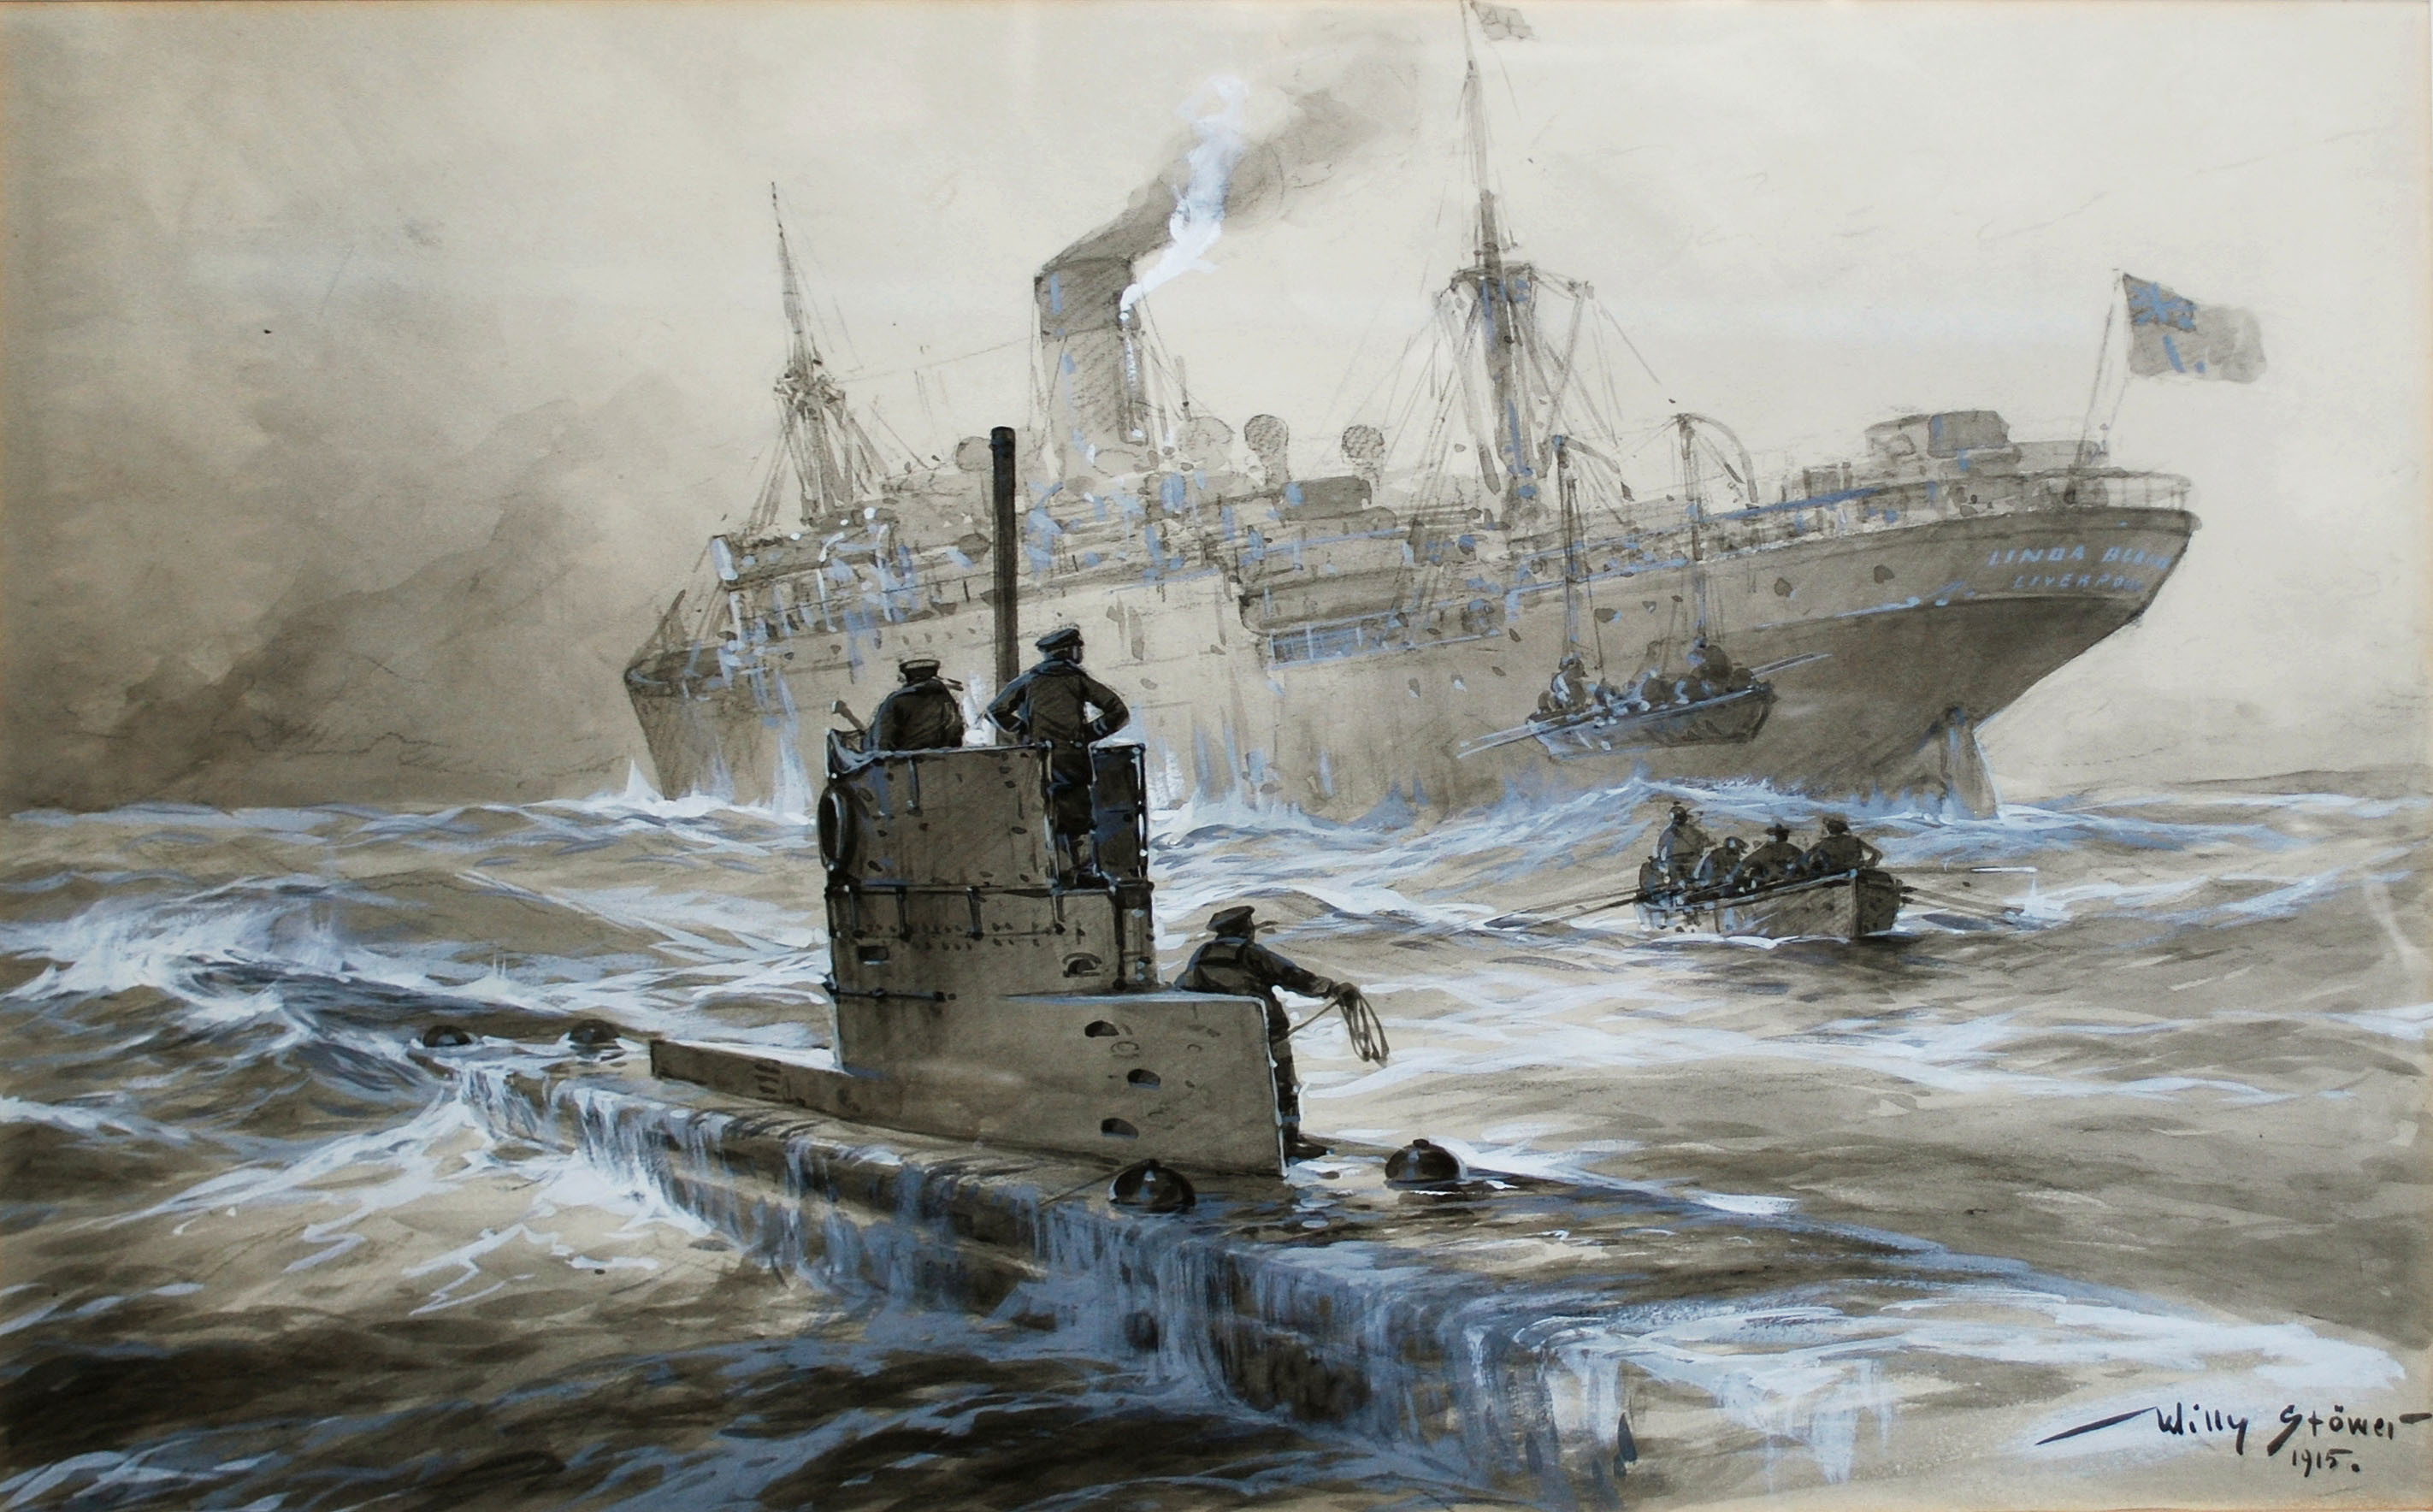 2845x1768 File:Willy Stöwer - Sinking of the Linda Blanche out of Liverpool.jpg